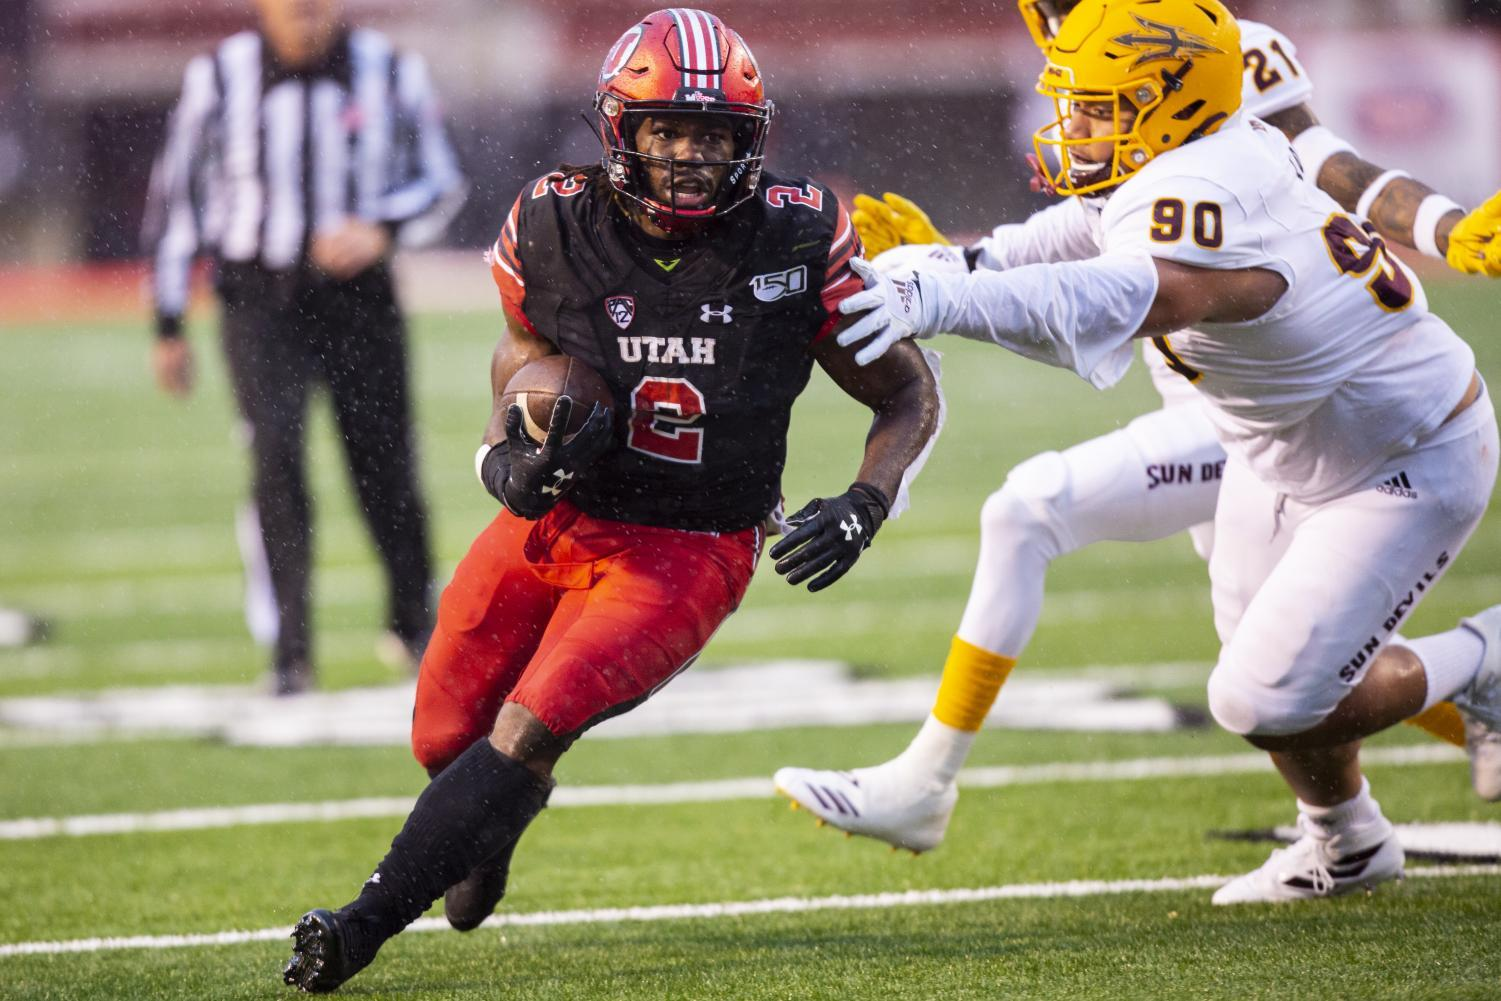 University of Utah senior running back Zack Moss (2) rushing with the ball after taking a handoff from University of Utah senior quarterback Tyler Huntley (1) in an NCAA Football game vs. Arizona State University at Rice-Eccles Stadium in Salt Lake City, UT on Saturday October 19, 2019.(Photo by Curtis Lin   Daily Utah Chronicle)